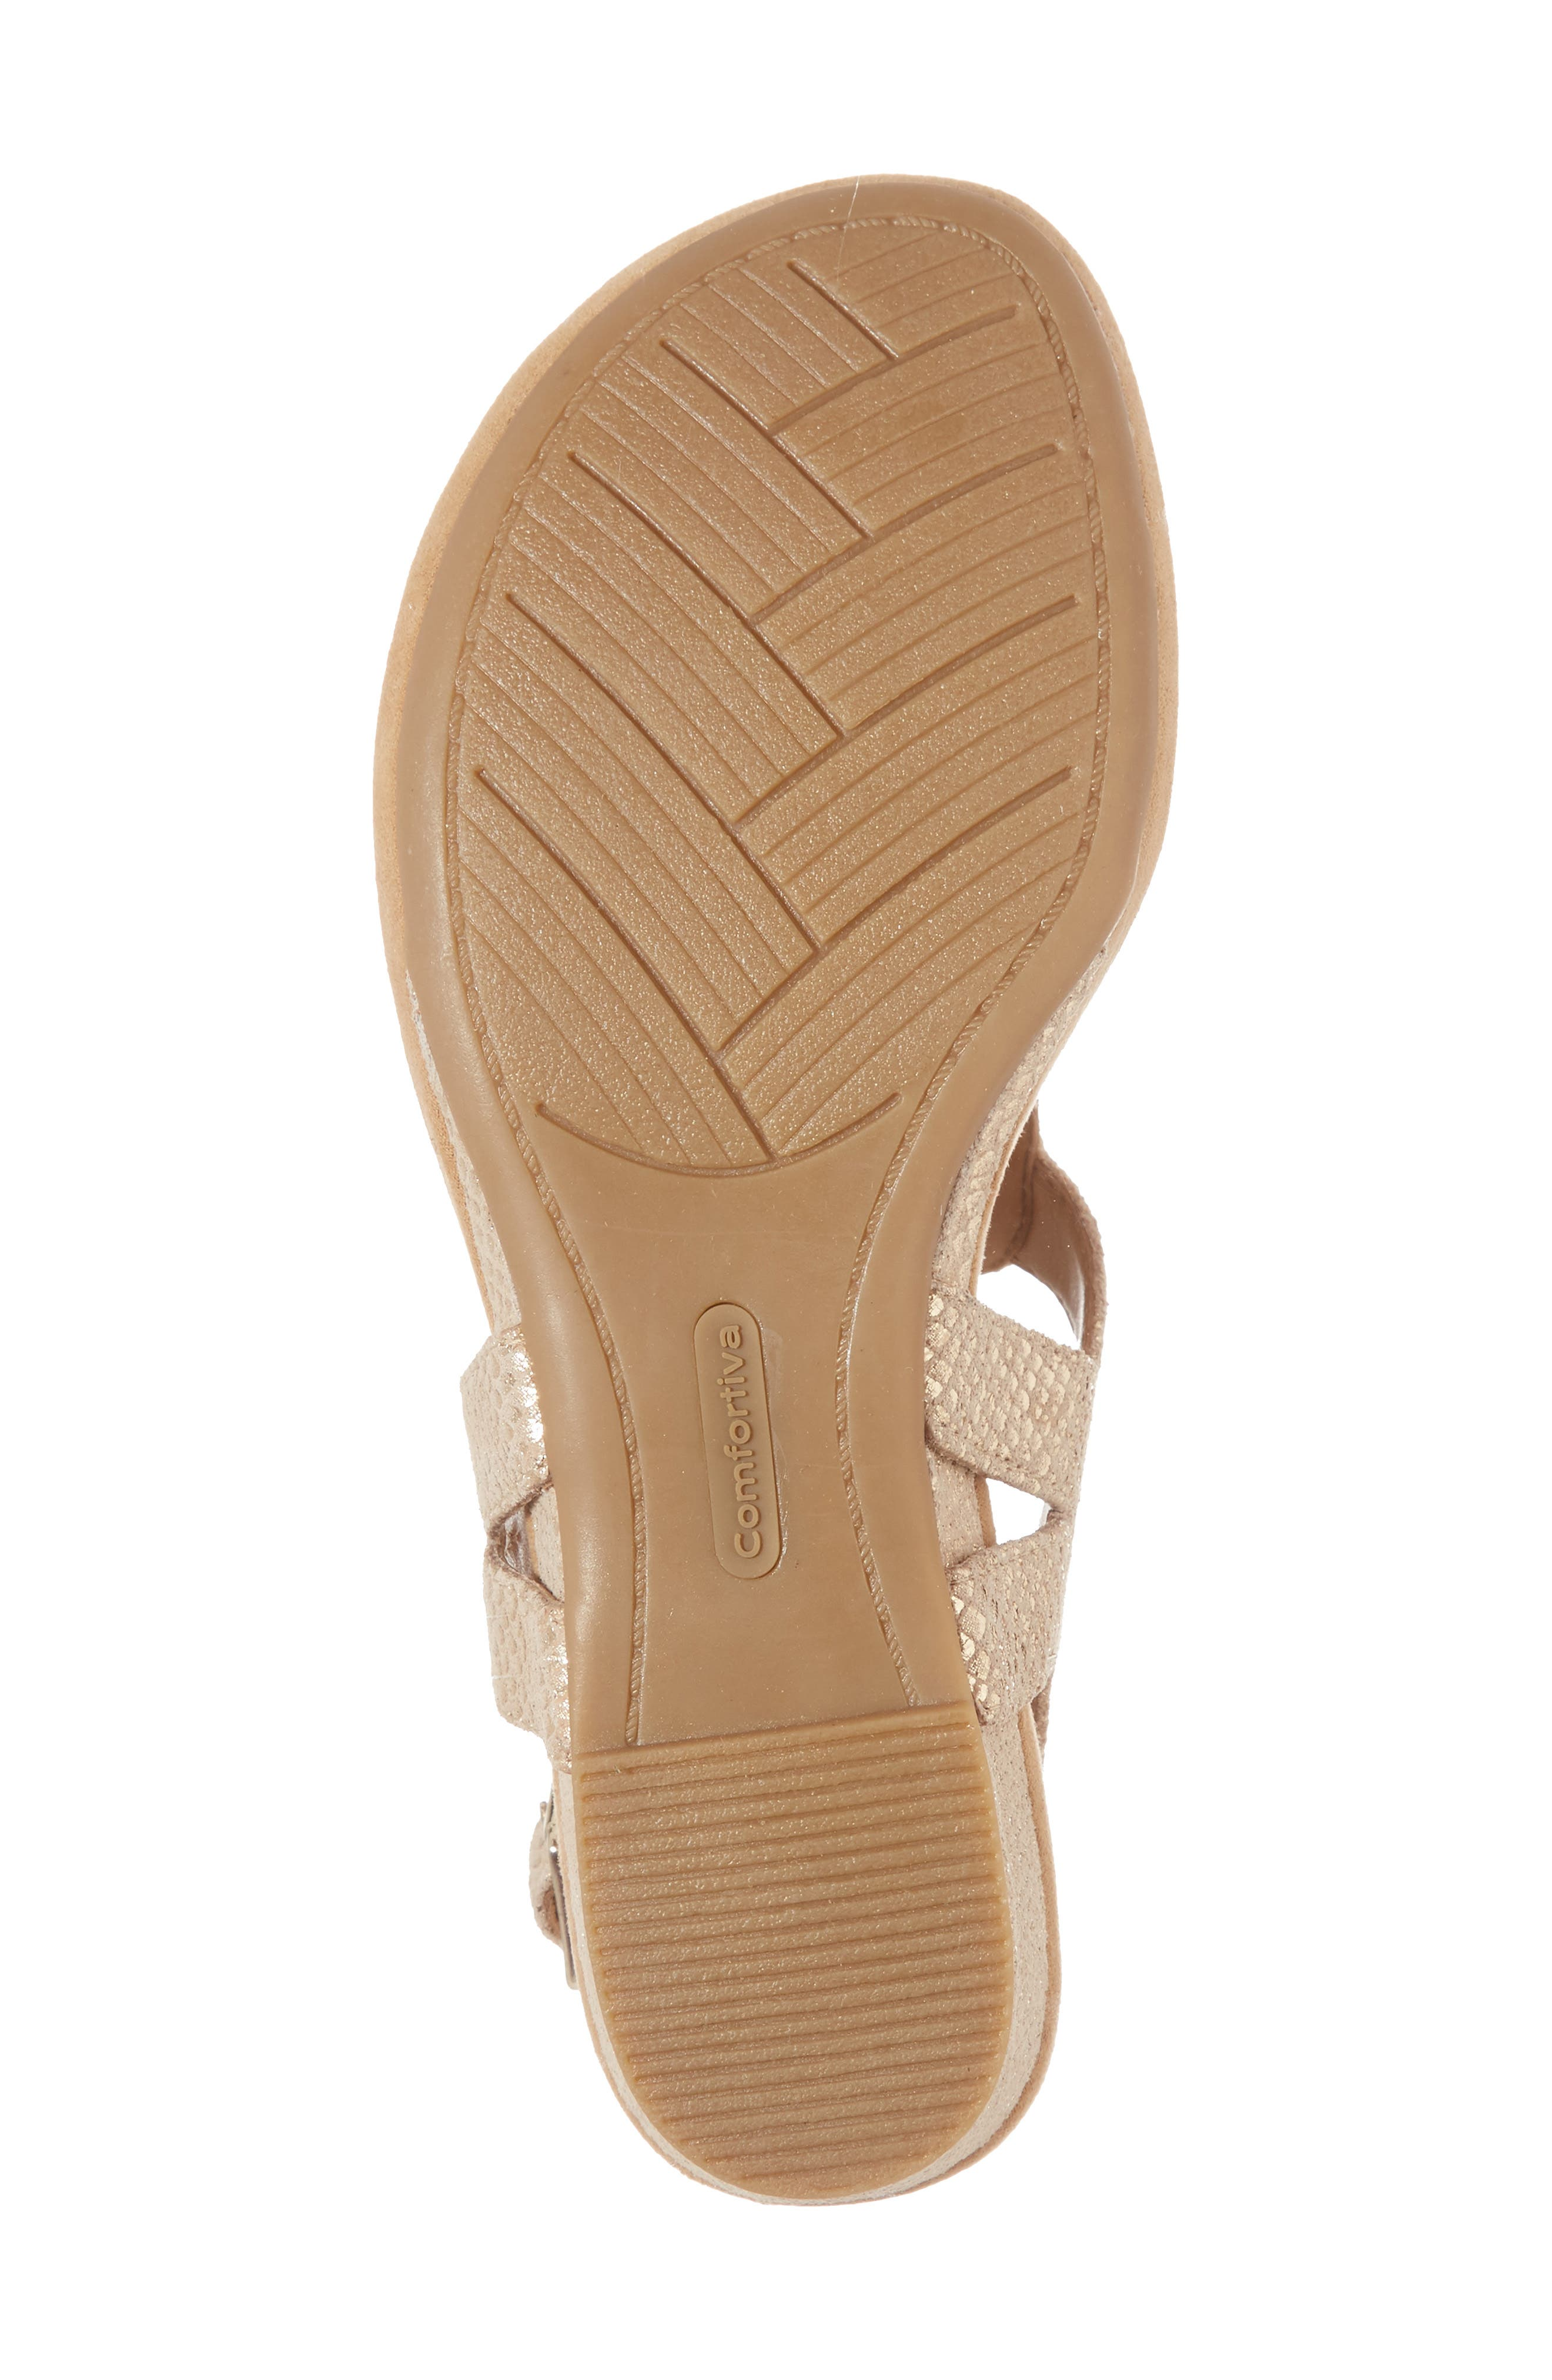 Summit Wedge Sandal,                             Alternate thumbnail 6, color,                             Gold Suede